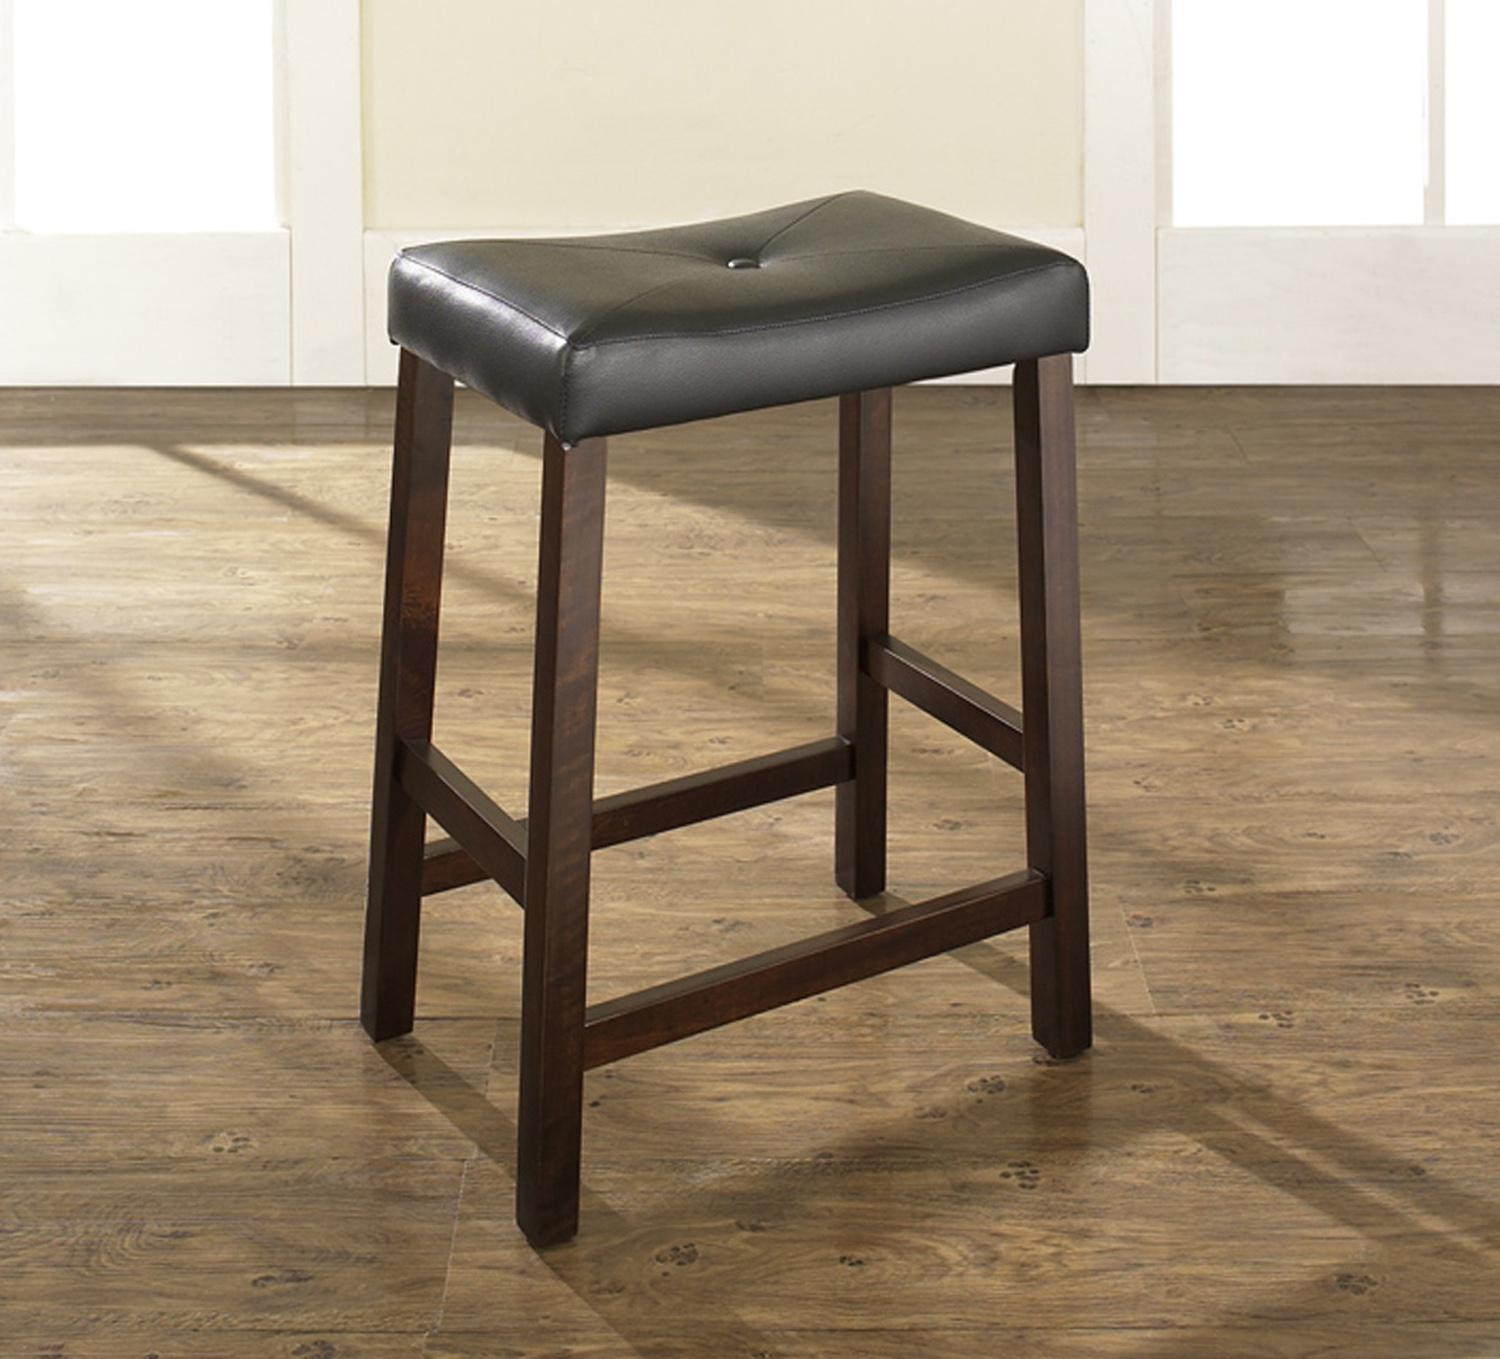 Saddle Bar Stools Cool Saddle Bar Stools For Kitchen